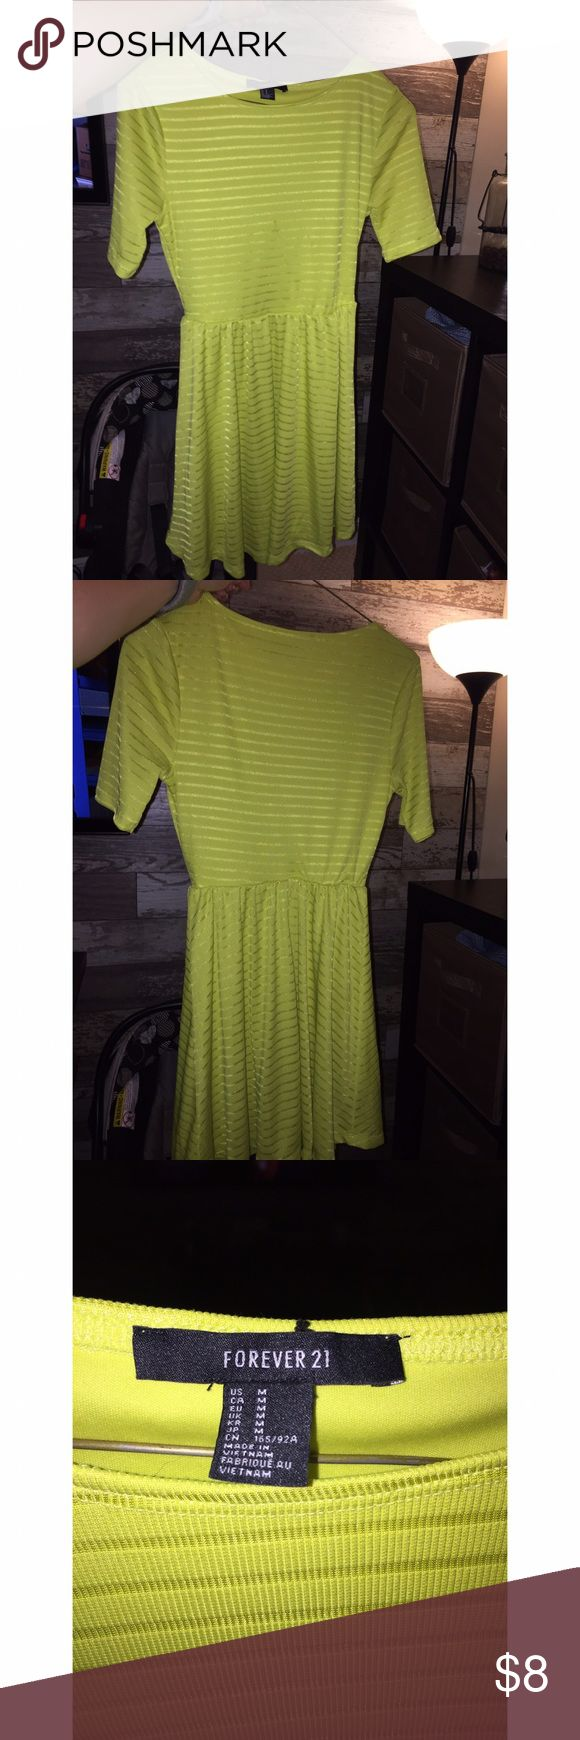 Neon yellow dress Neon yellow dress. Small stain not noticeable in person. The flash enhanced it ! Forever 21 Dresses